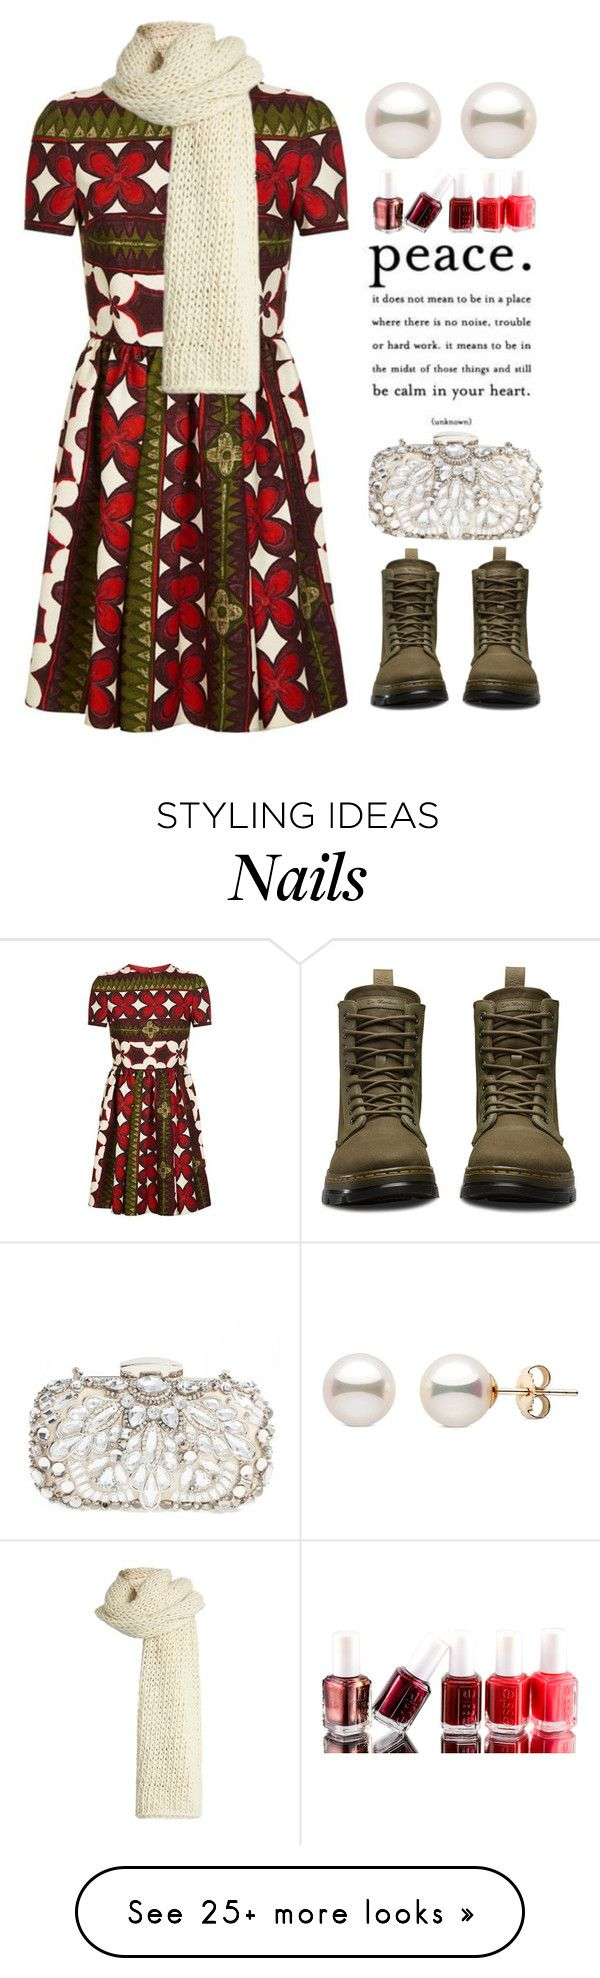 """~Cheer~"" by amethyst0818 on Polyvore featuring Valentino, Dr. Martens, Natasha Couture, I Love Mr. Mittens and Essie"